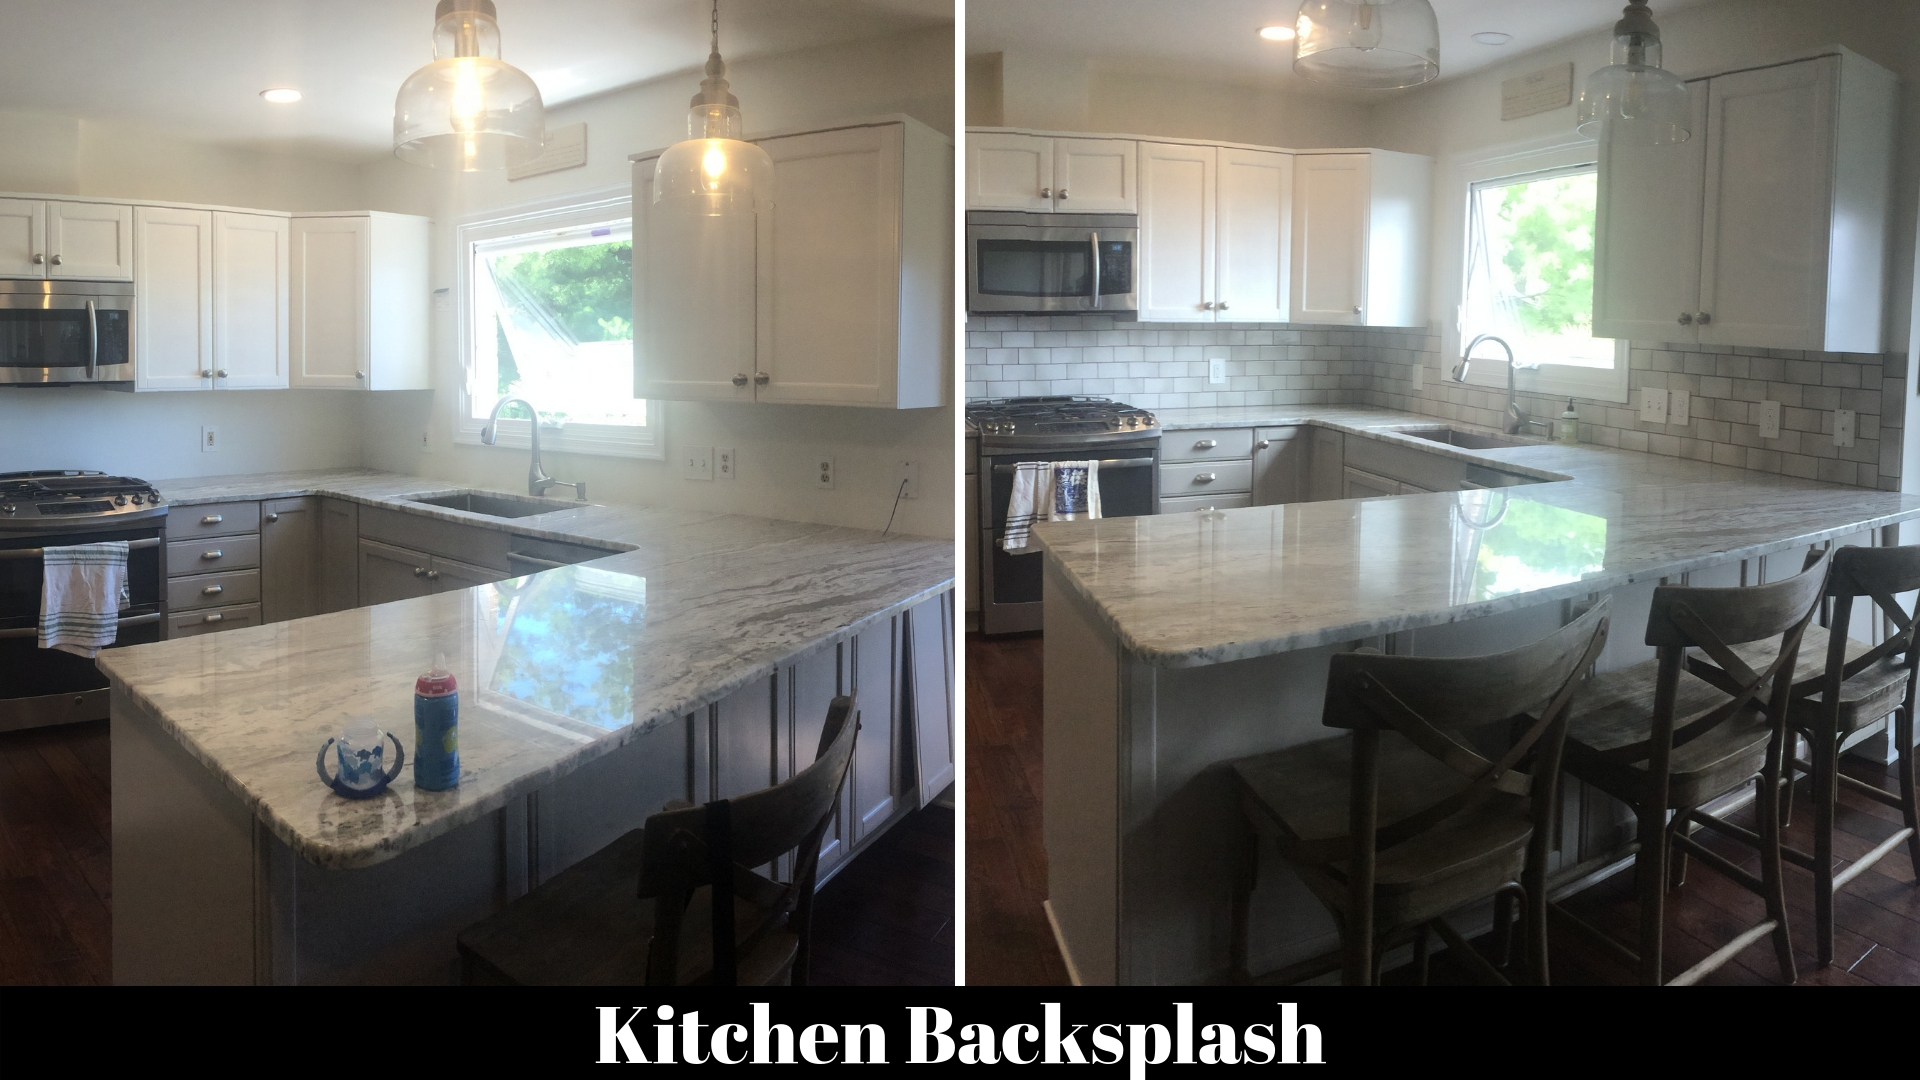 Kitchen Back splash new.jpg